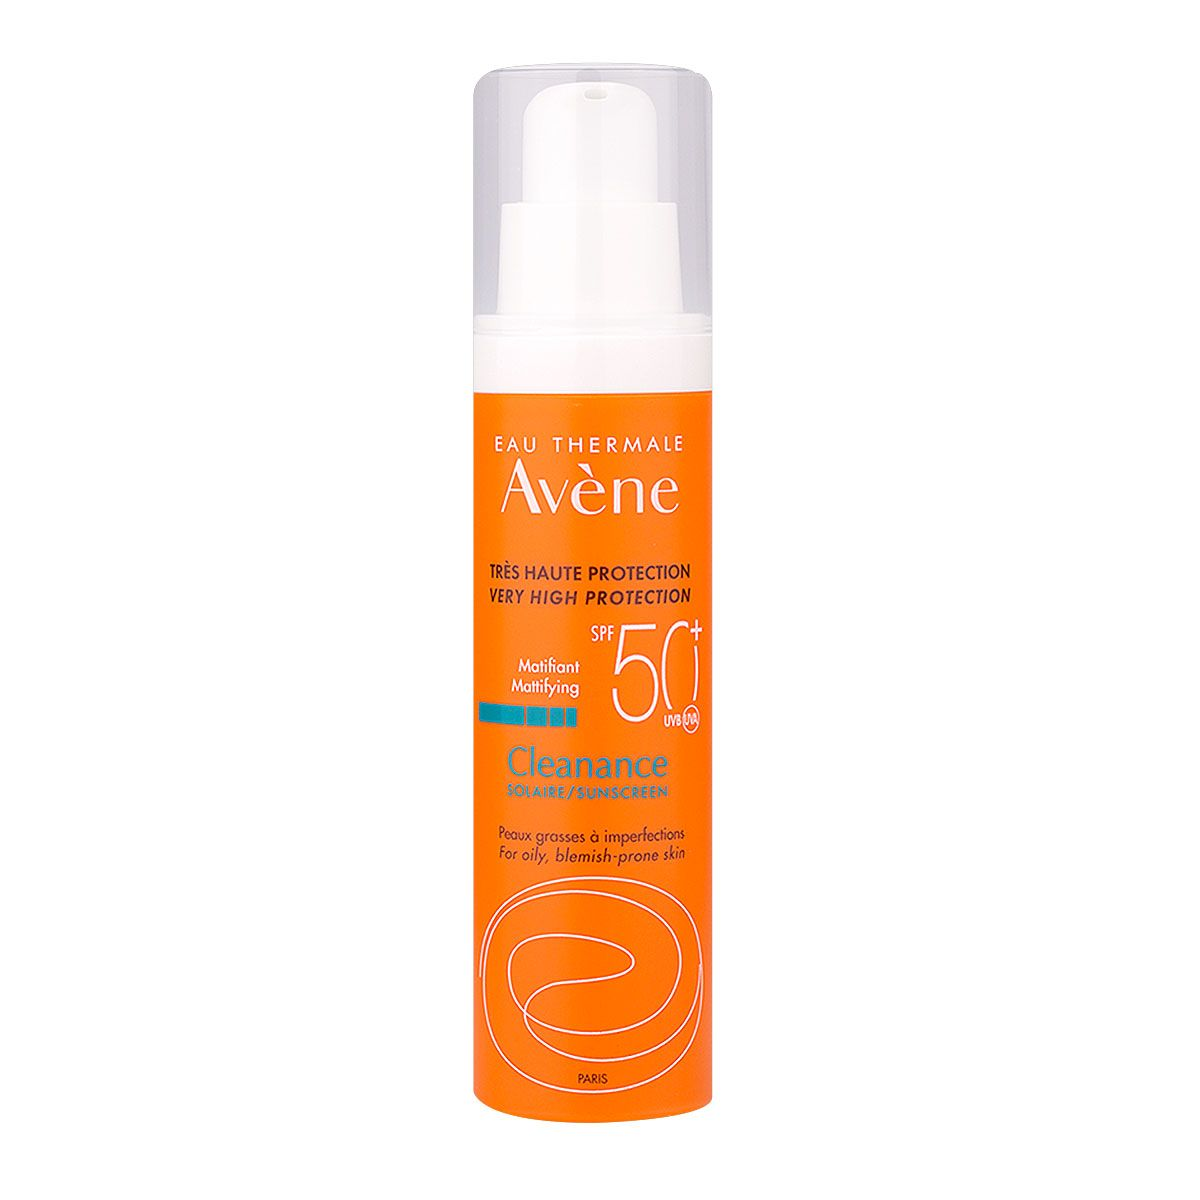 Cleanance Solaire SPF50+ 50ML